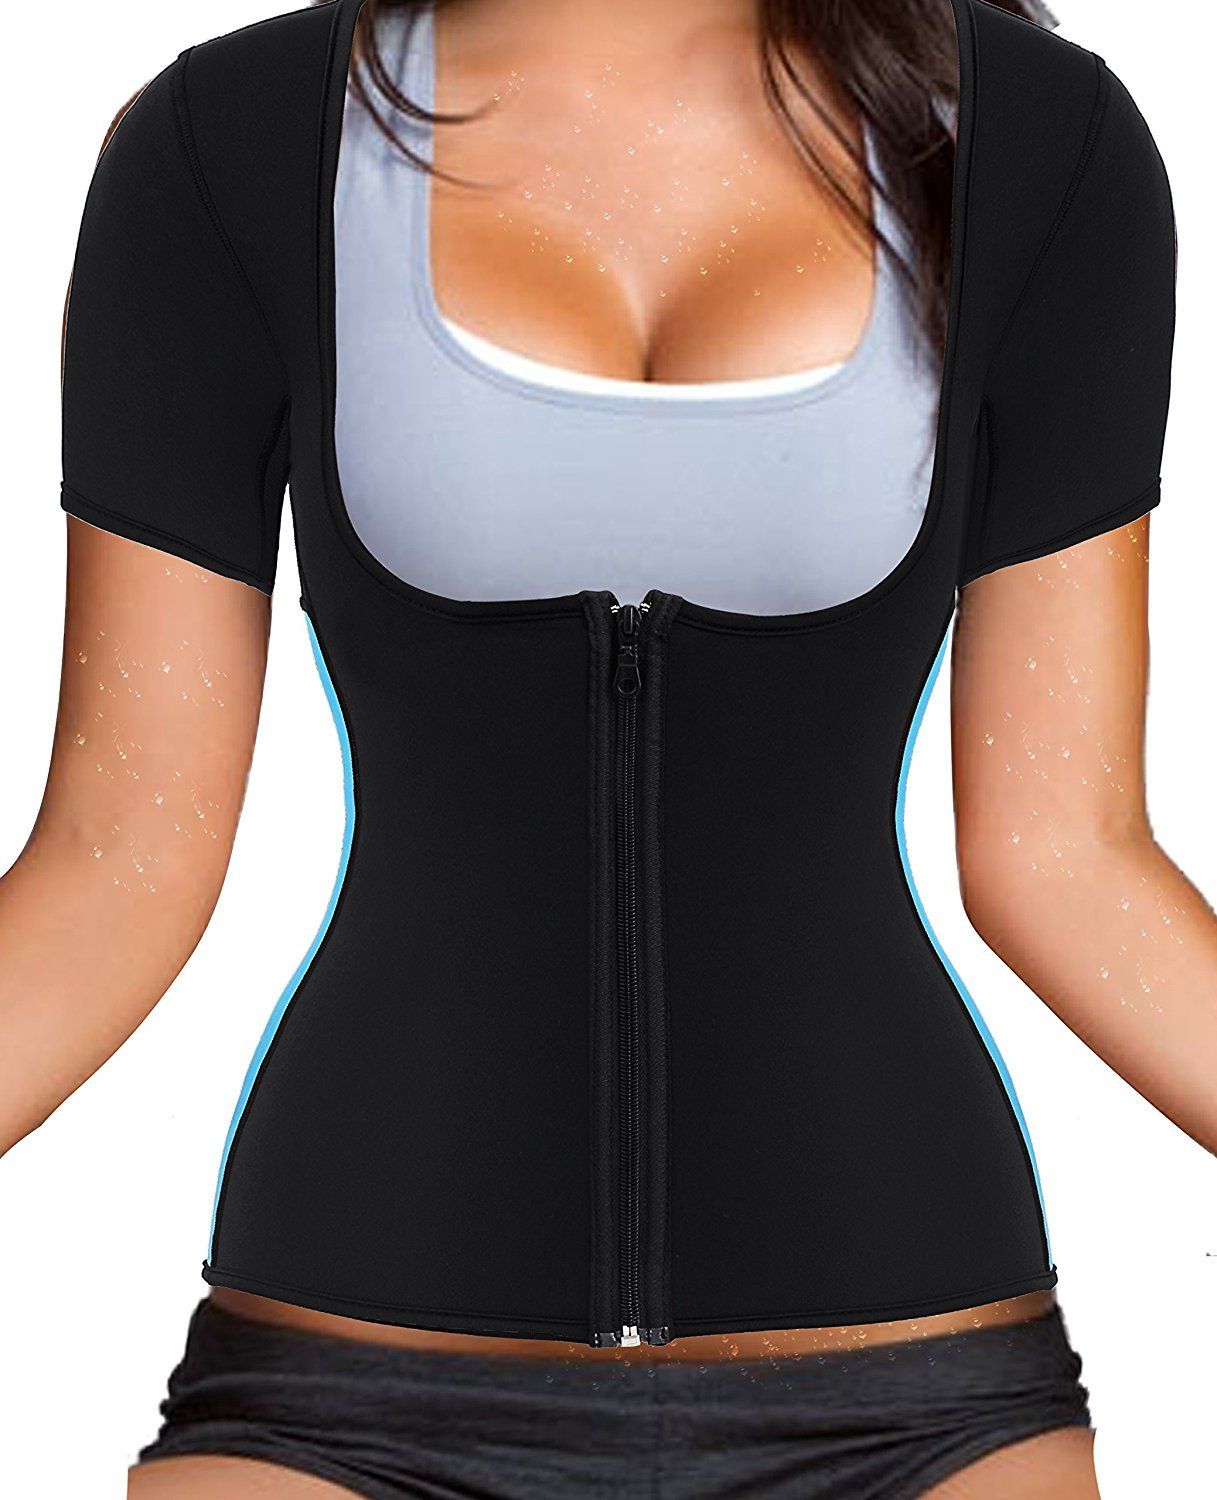 Women's Neoprene Sauna Sweat Waist Trainer Vest with Zipper for Weight Loss Gym Workout Body Shaper Tank Top Shirt